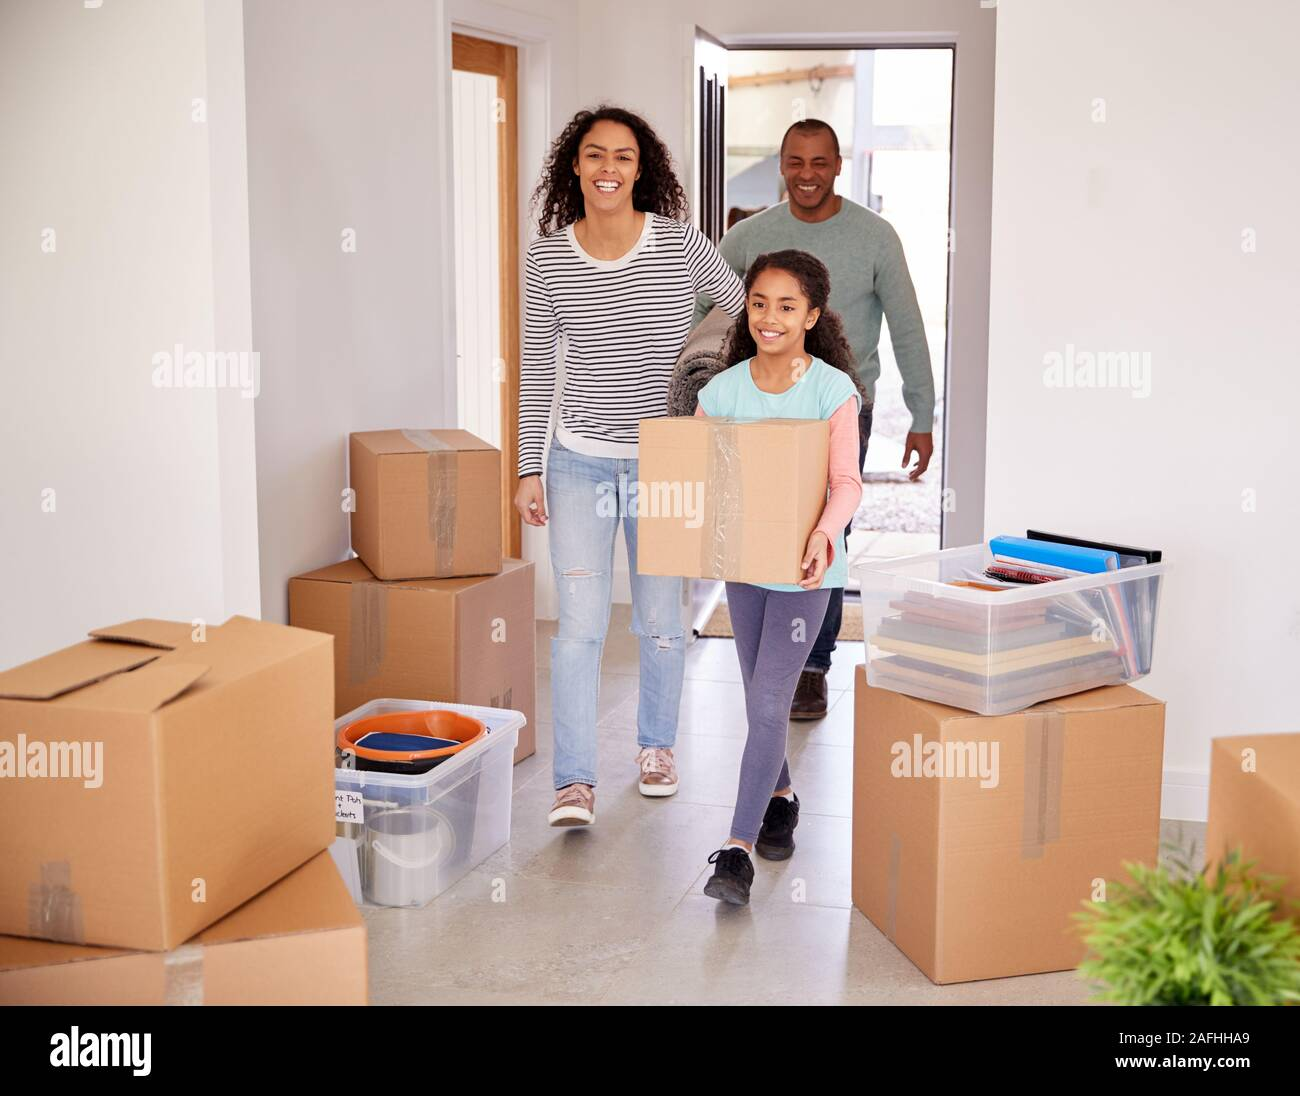 Smiling Family Carrying Boxes Into New Home On Moving Day Stock Photo